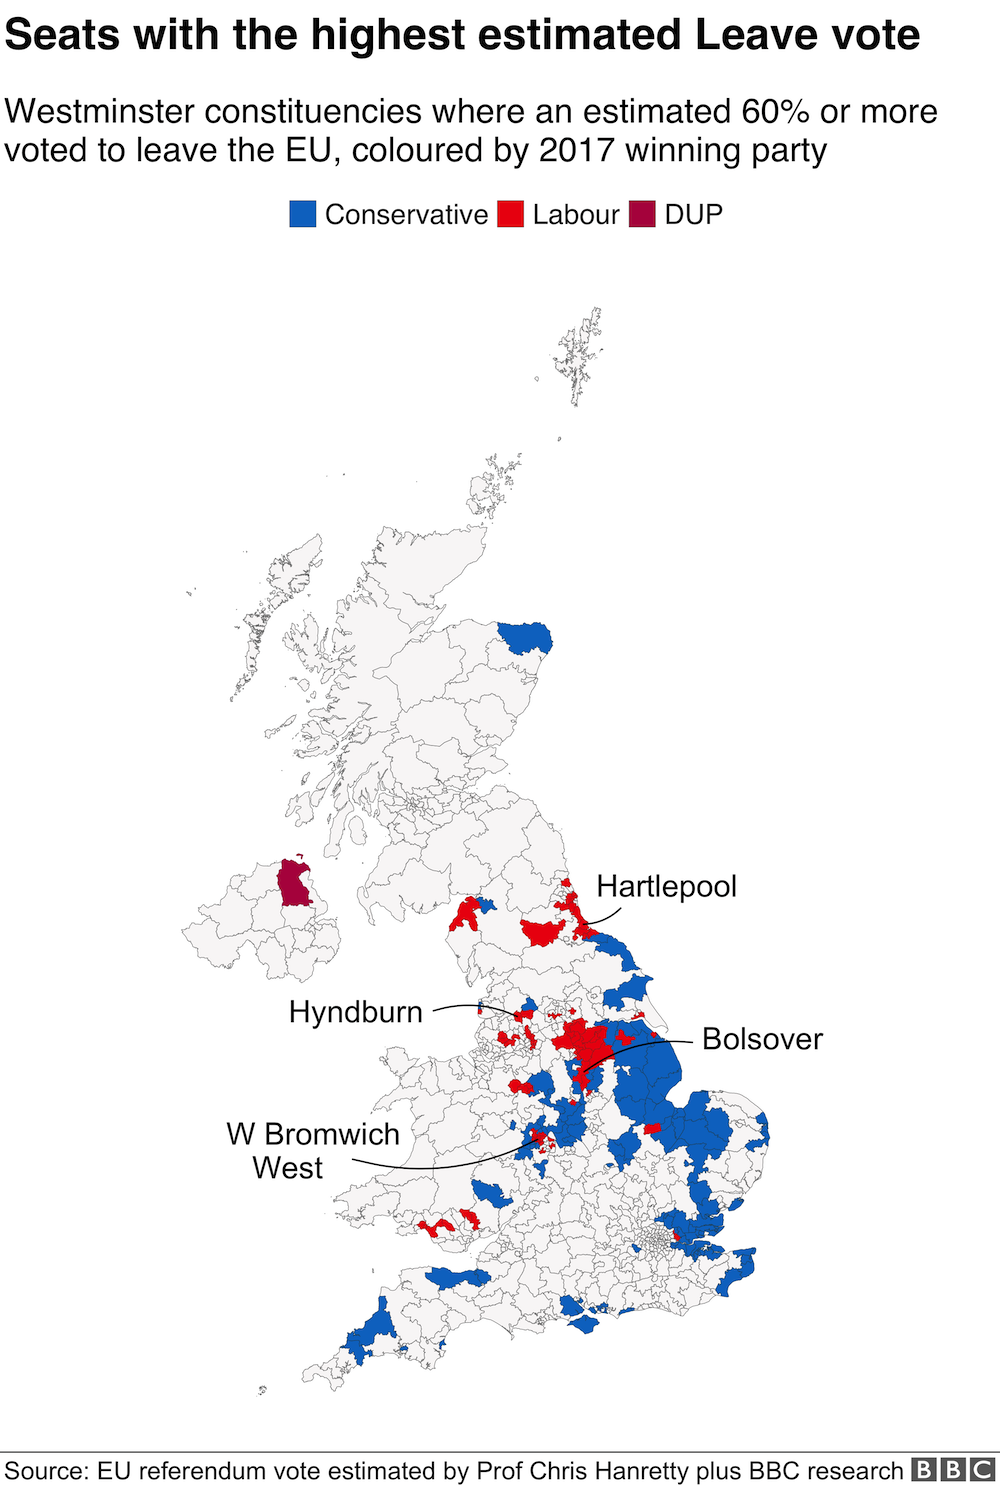 Seats with the highest estimated Leave vote